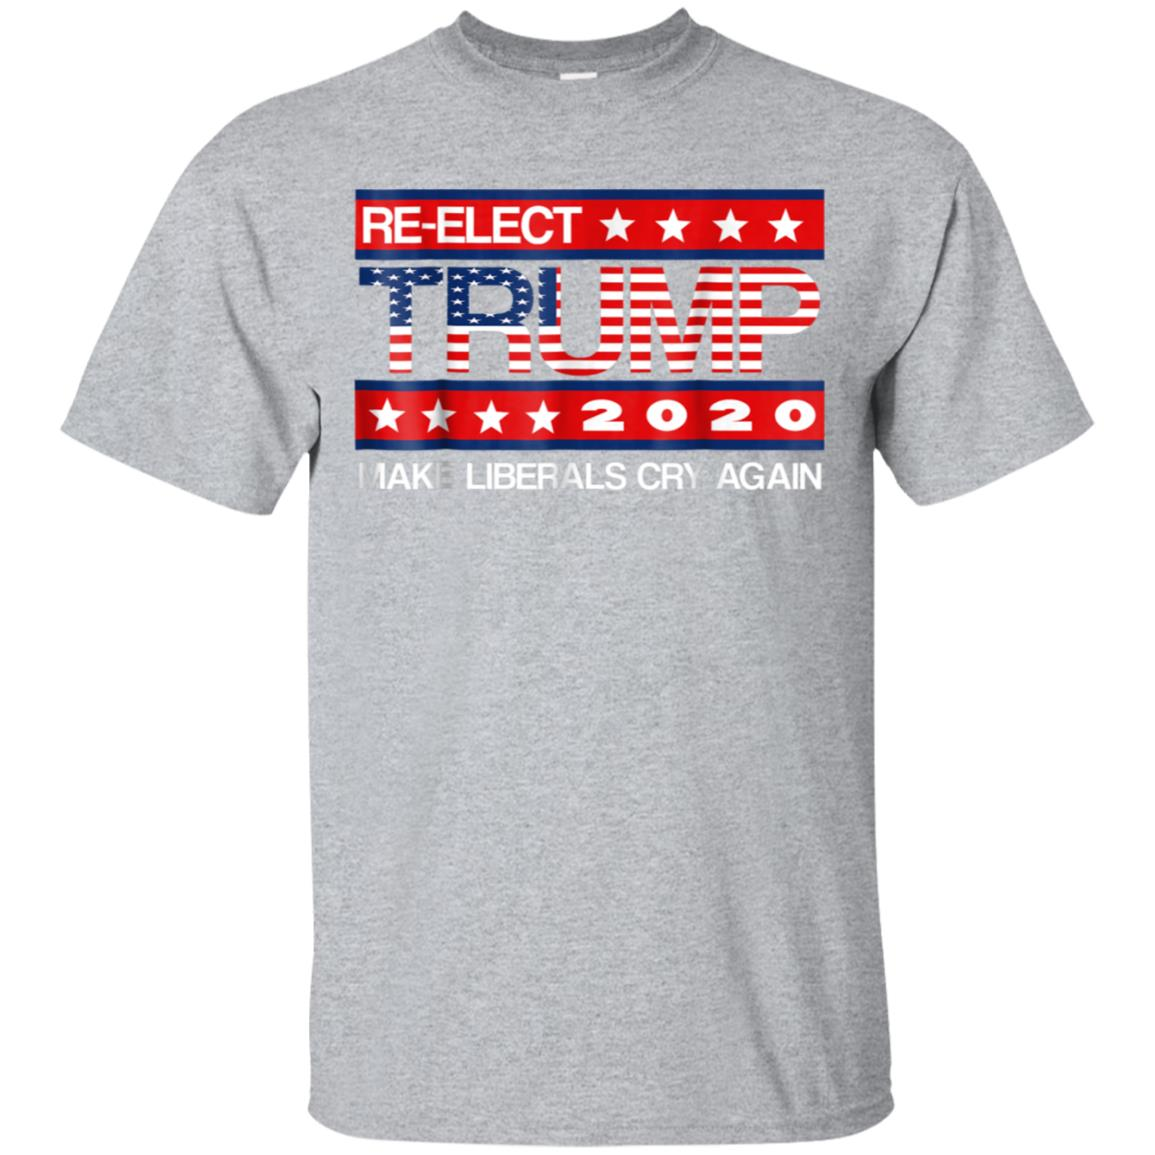 Donald Trump Election 2020 Make Liberals Cry Again GOP Shirt 99promocode